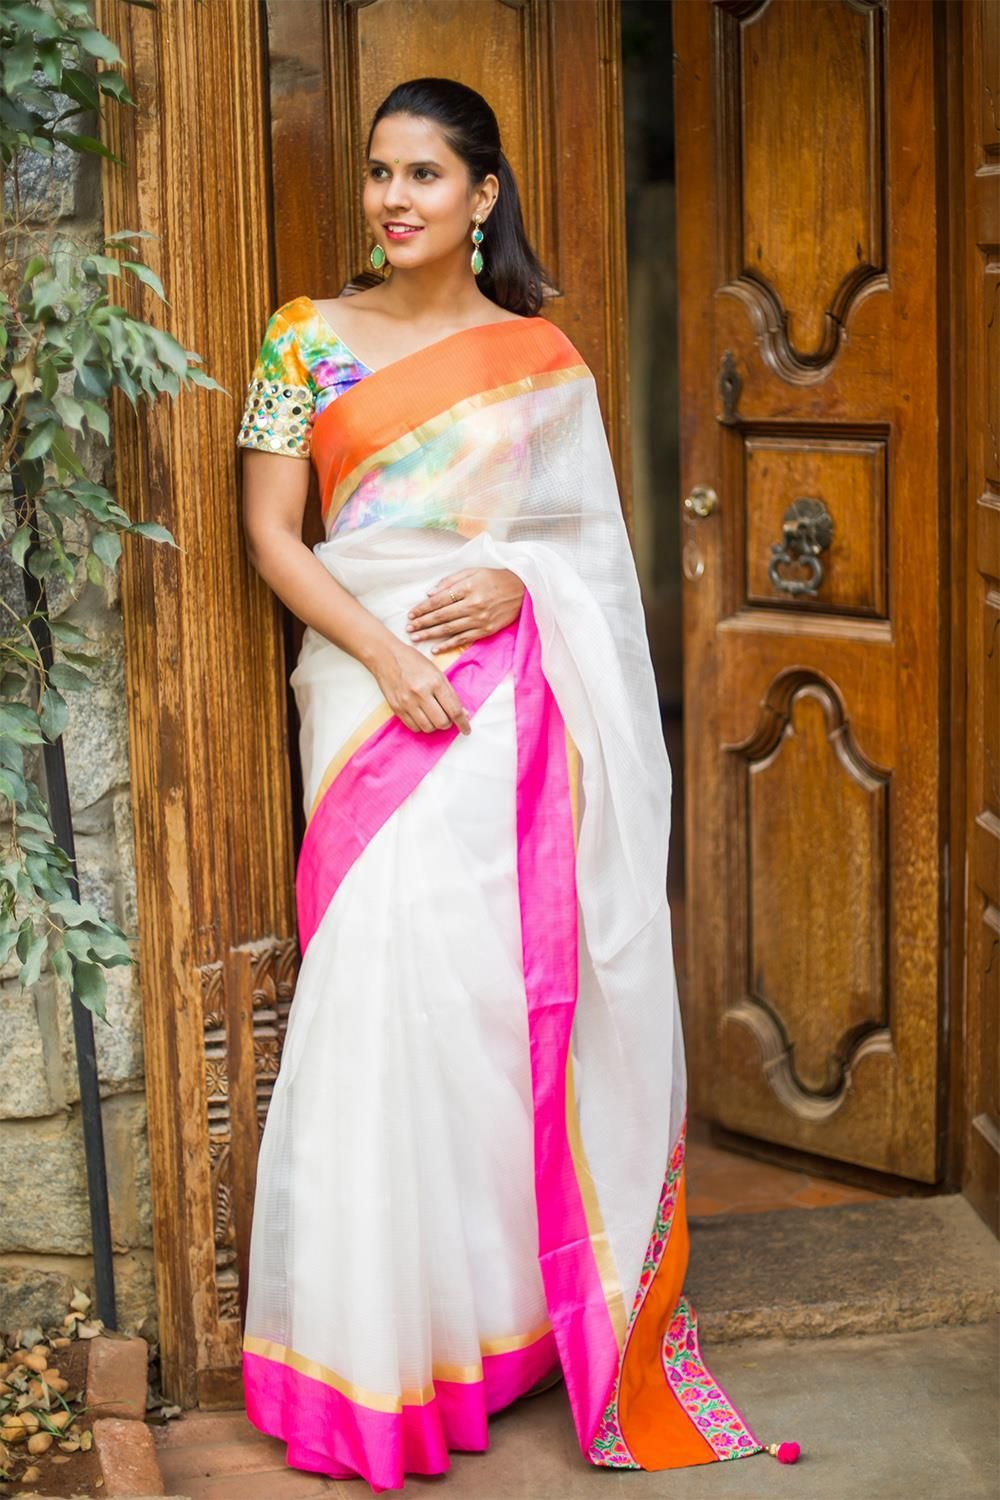 e32744feab38df White silk Kota saree with orange, pink and gold border #saree # houseofblouse #kota #white #pink #orange #gold